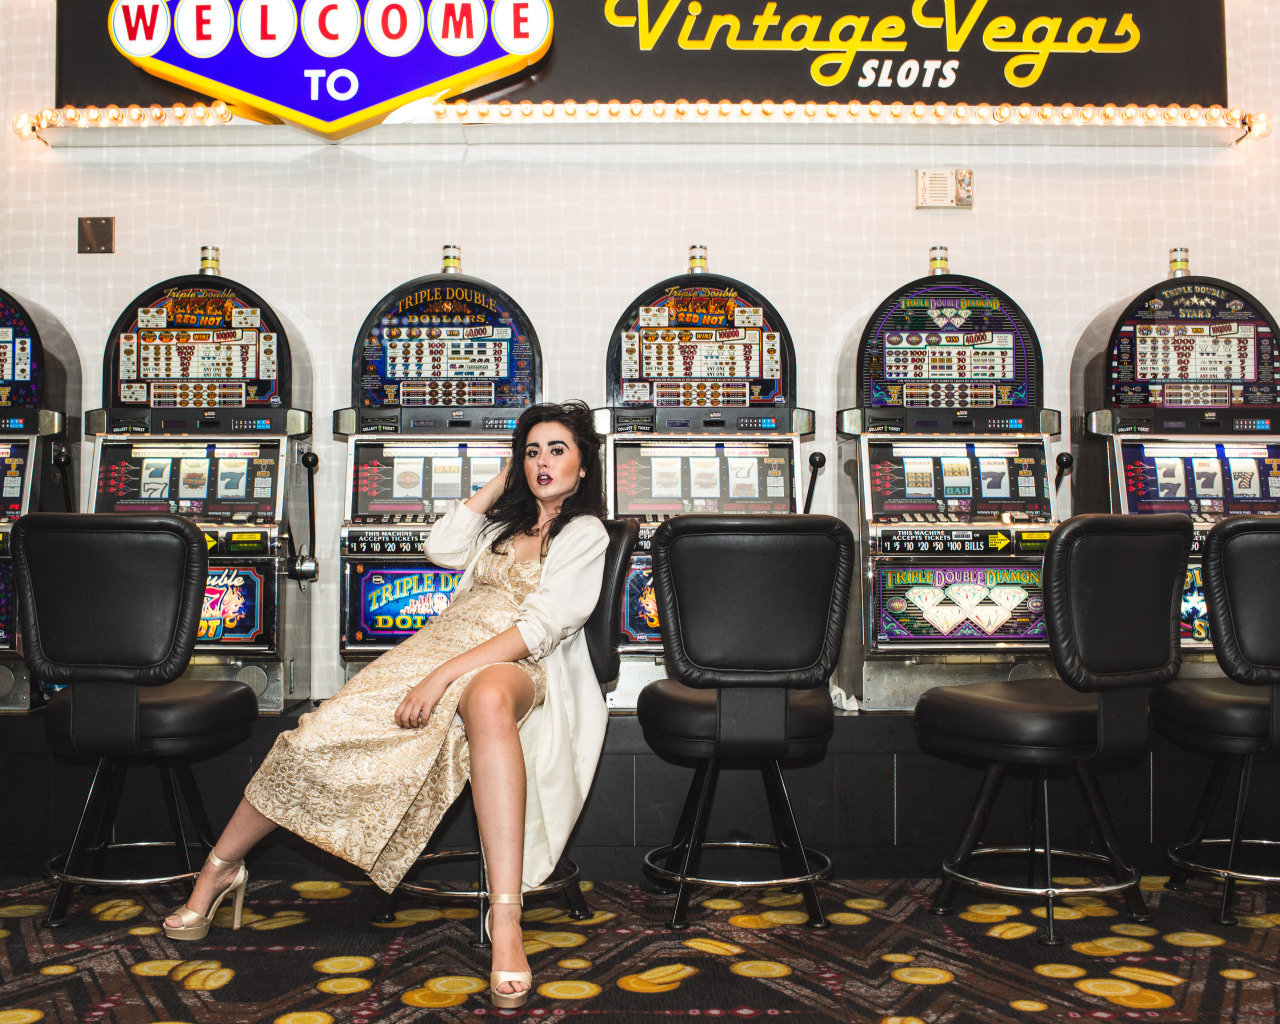 VEGAS BABY ~ ready to escape to my plastic wonderland of lust & drugs. Just to be the showgirl of the night and prance around pretending it's all a good dream. I'm so sober but high on money and fleeting dreams ~ take me back xx #vegas #baby #chasemccurdy